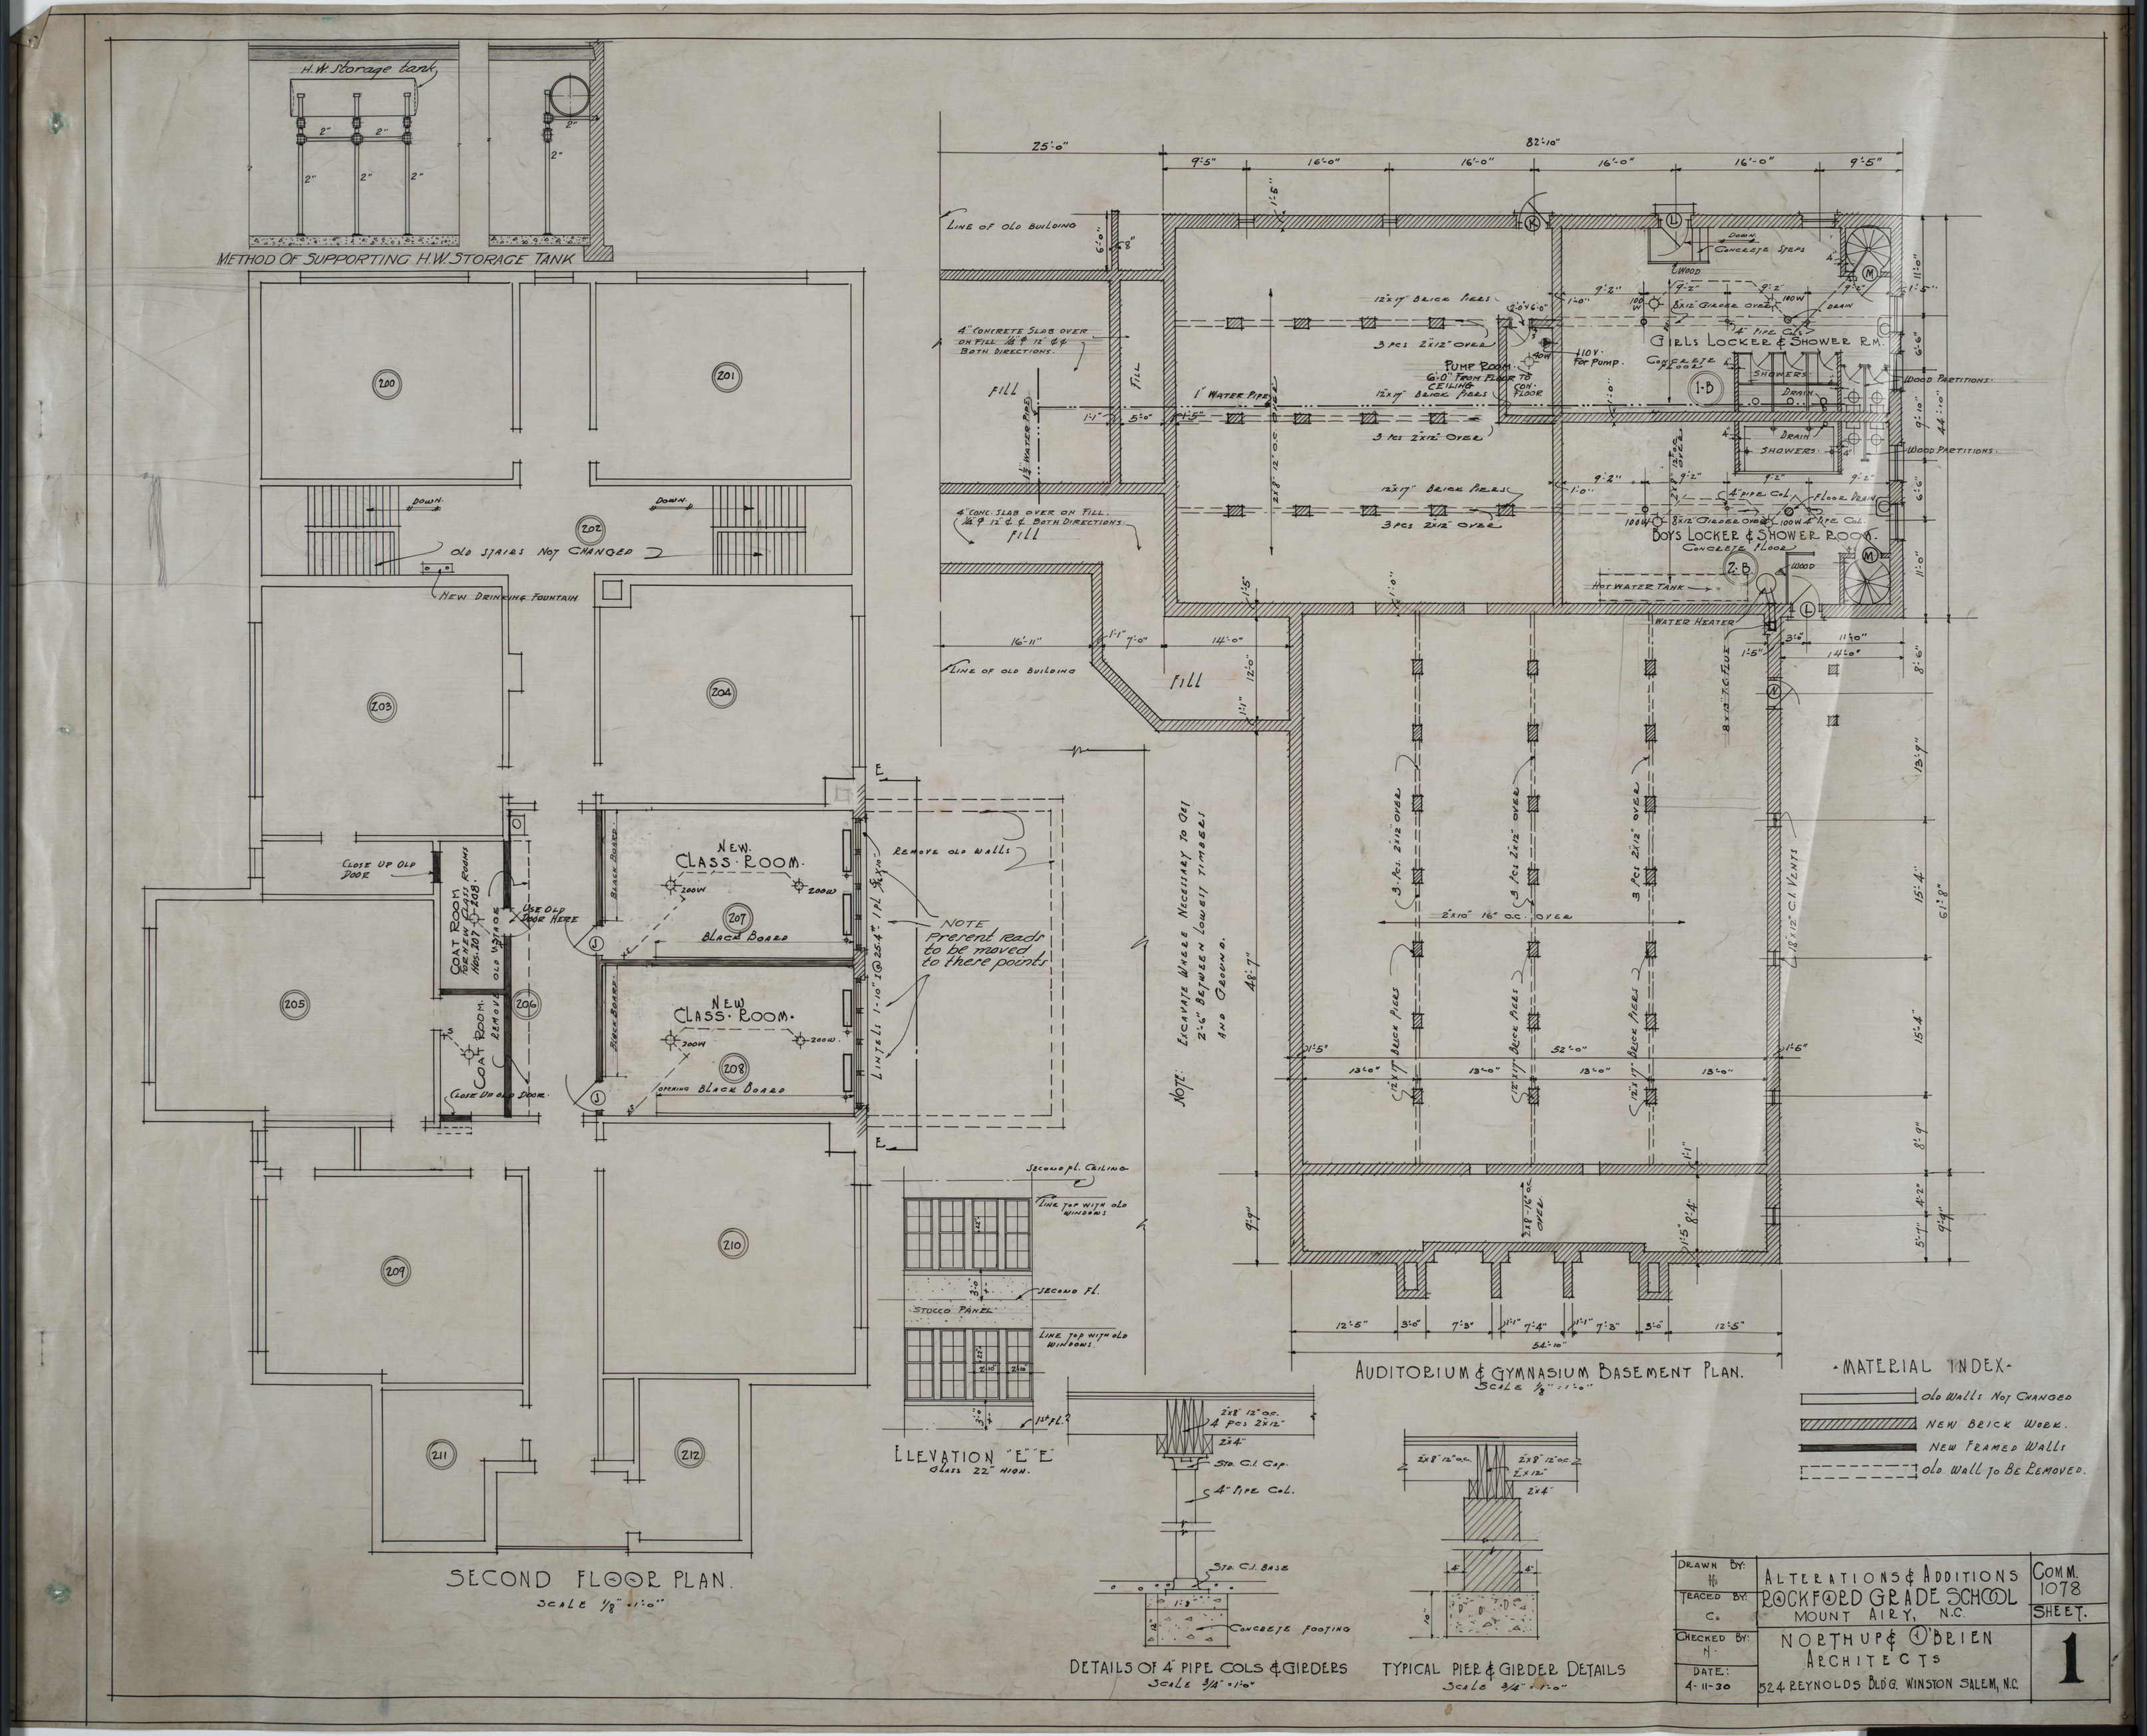 Second Floor Plan Auditorium And Gym Basement Plan